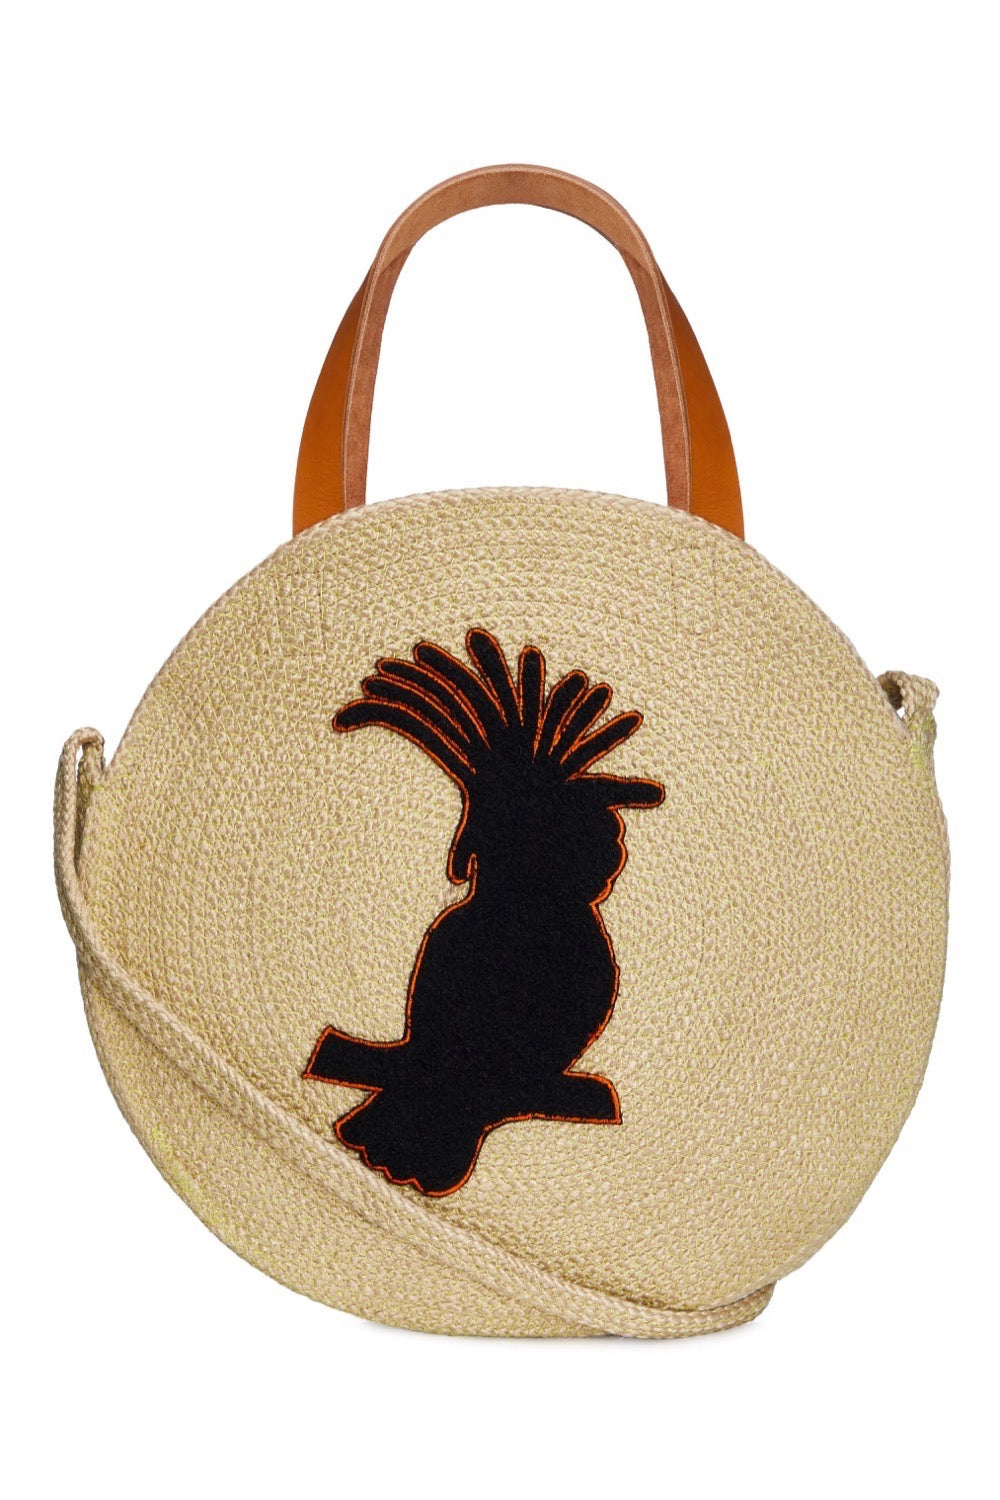 Jute Round Shopper - Cockatoo